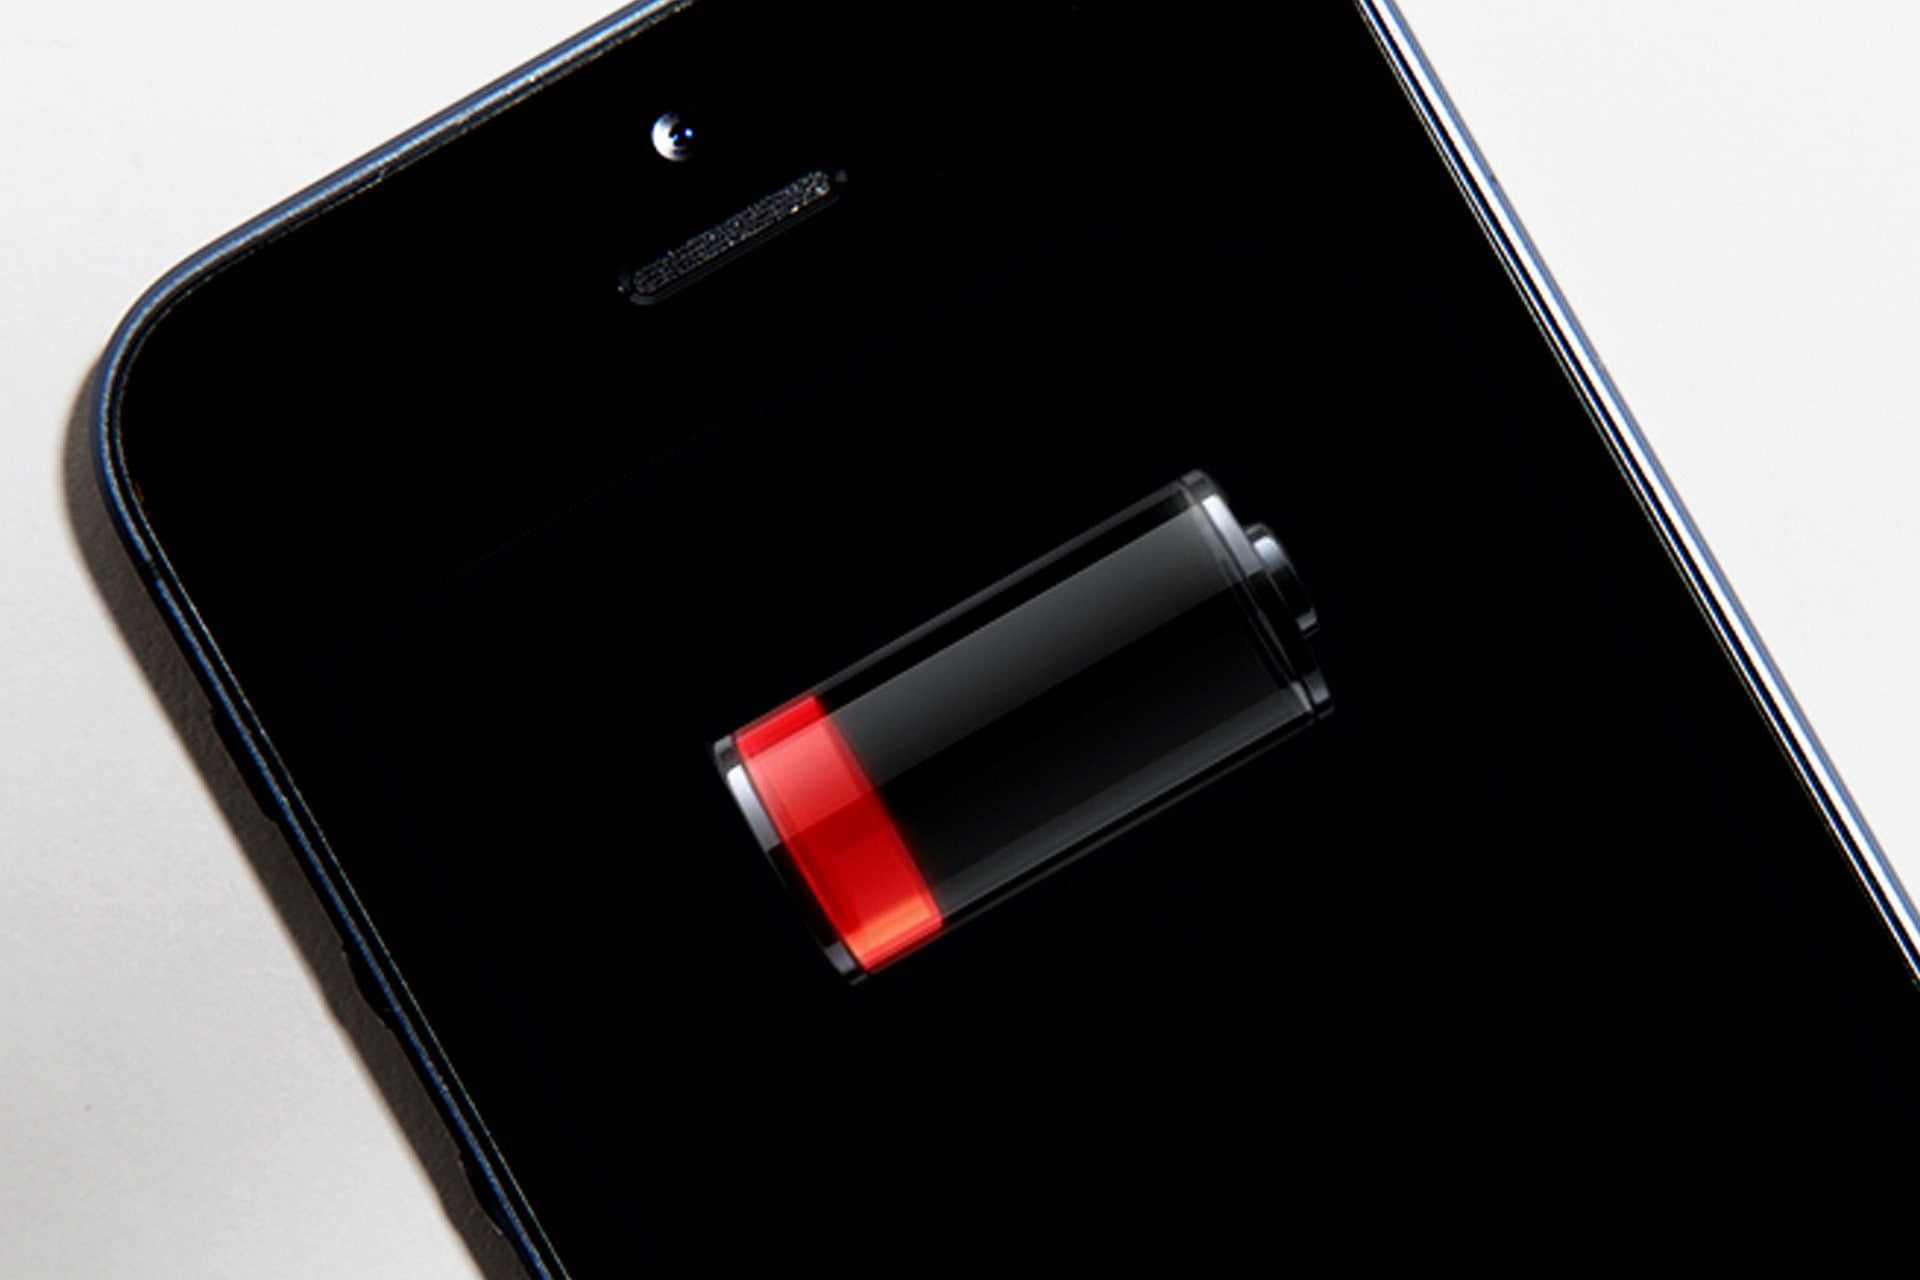 How to fix battery consumption issues on iPhone? [iOS 14]